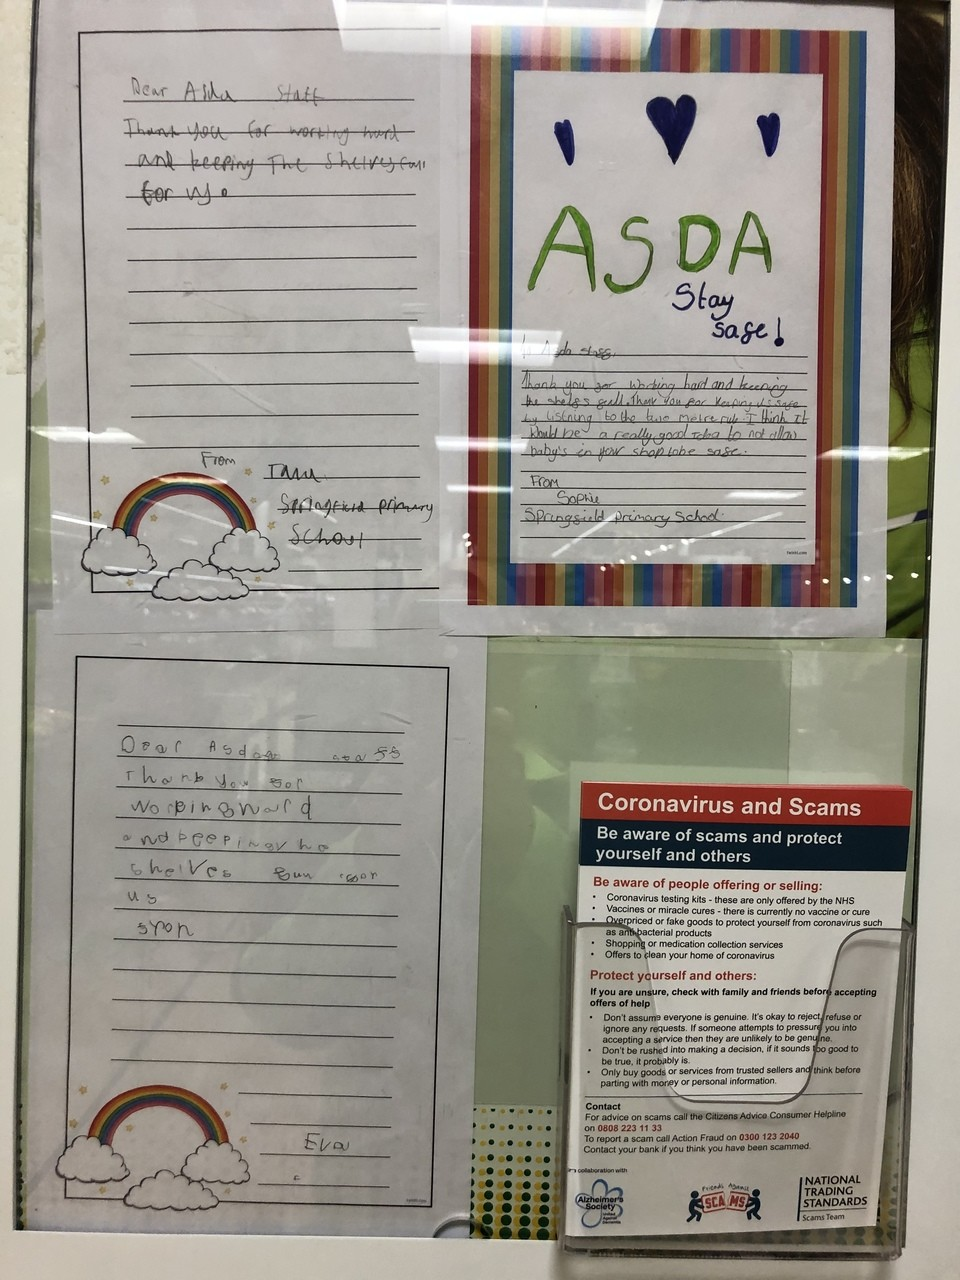 Thank you Springfield Primary School | Asda Derby